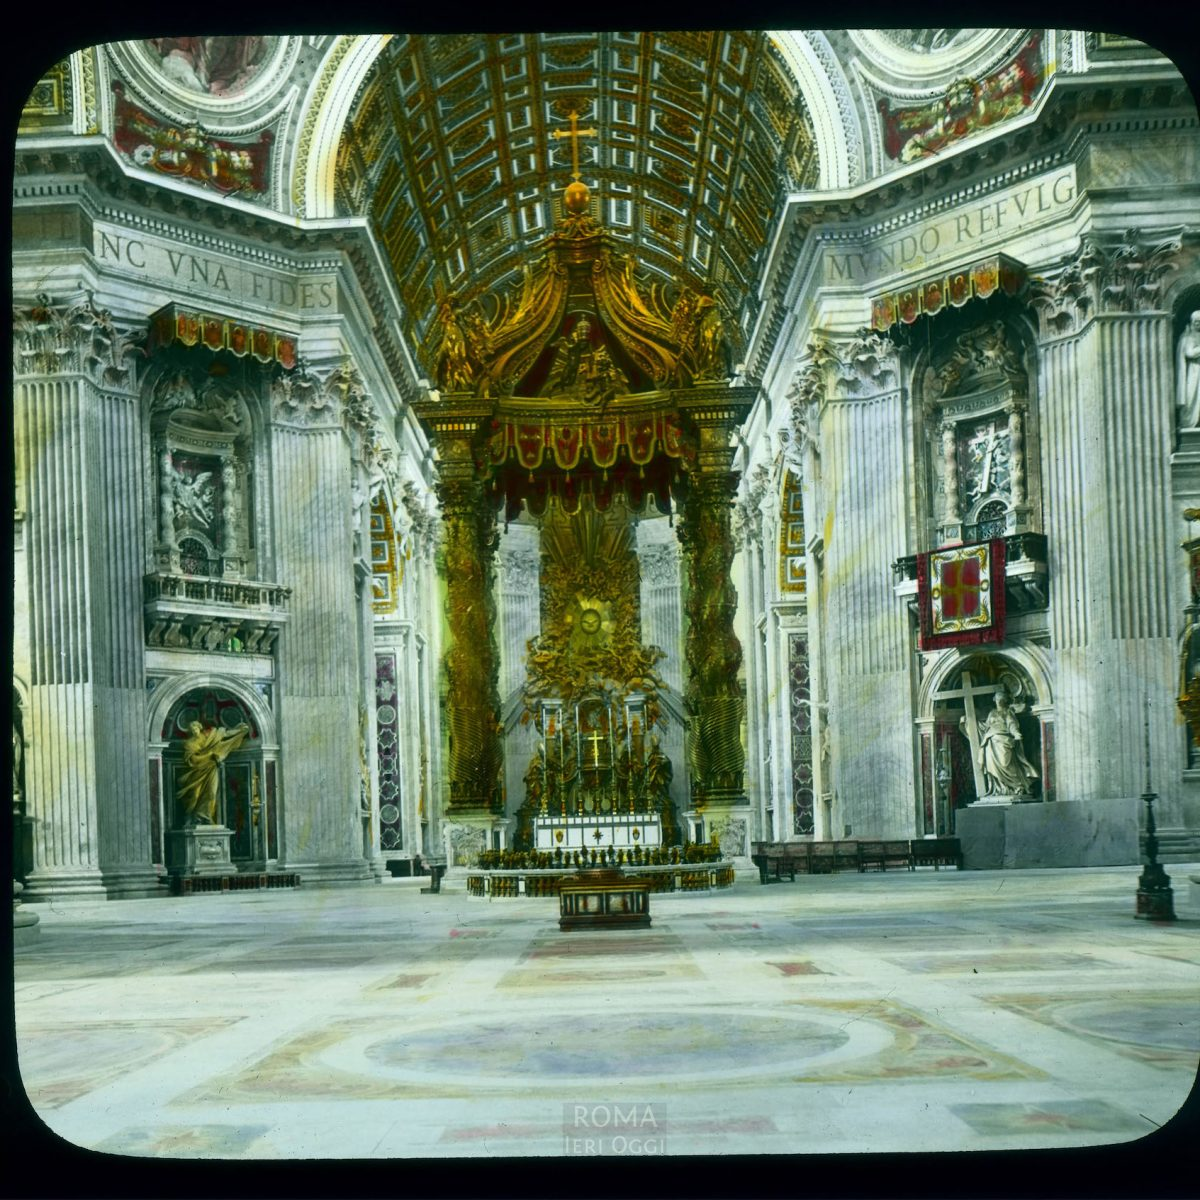 Vatican City. St. Peter's Basilica: interior, with bronze baldachin by Bernini (1623-1633) View in tinted lantern slide, ca. 1919-1938. The basilica dates from ca. 1506-1626.